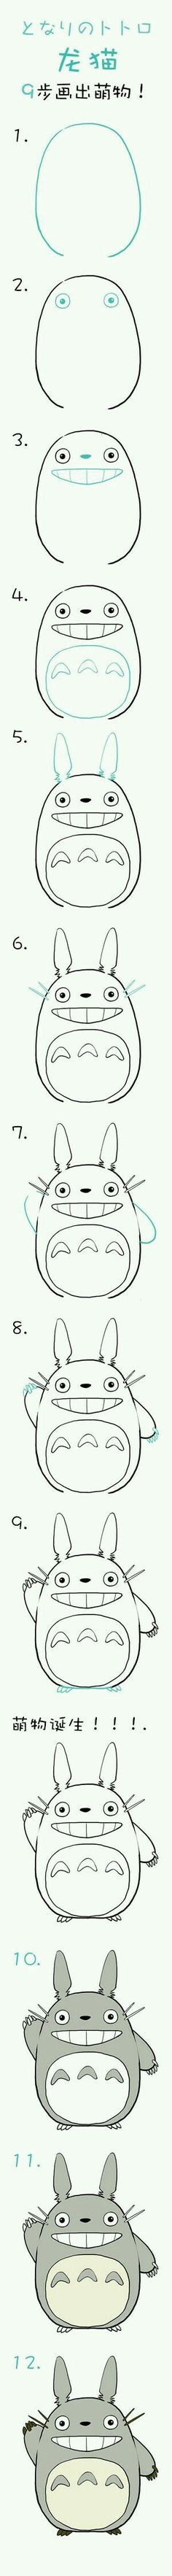 How to draw totoro